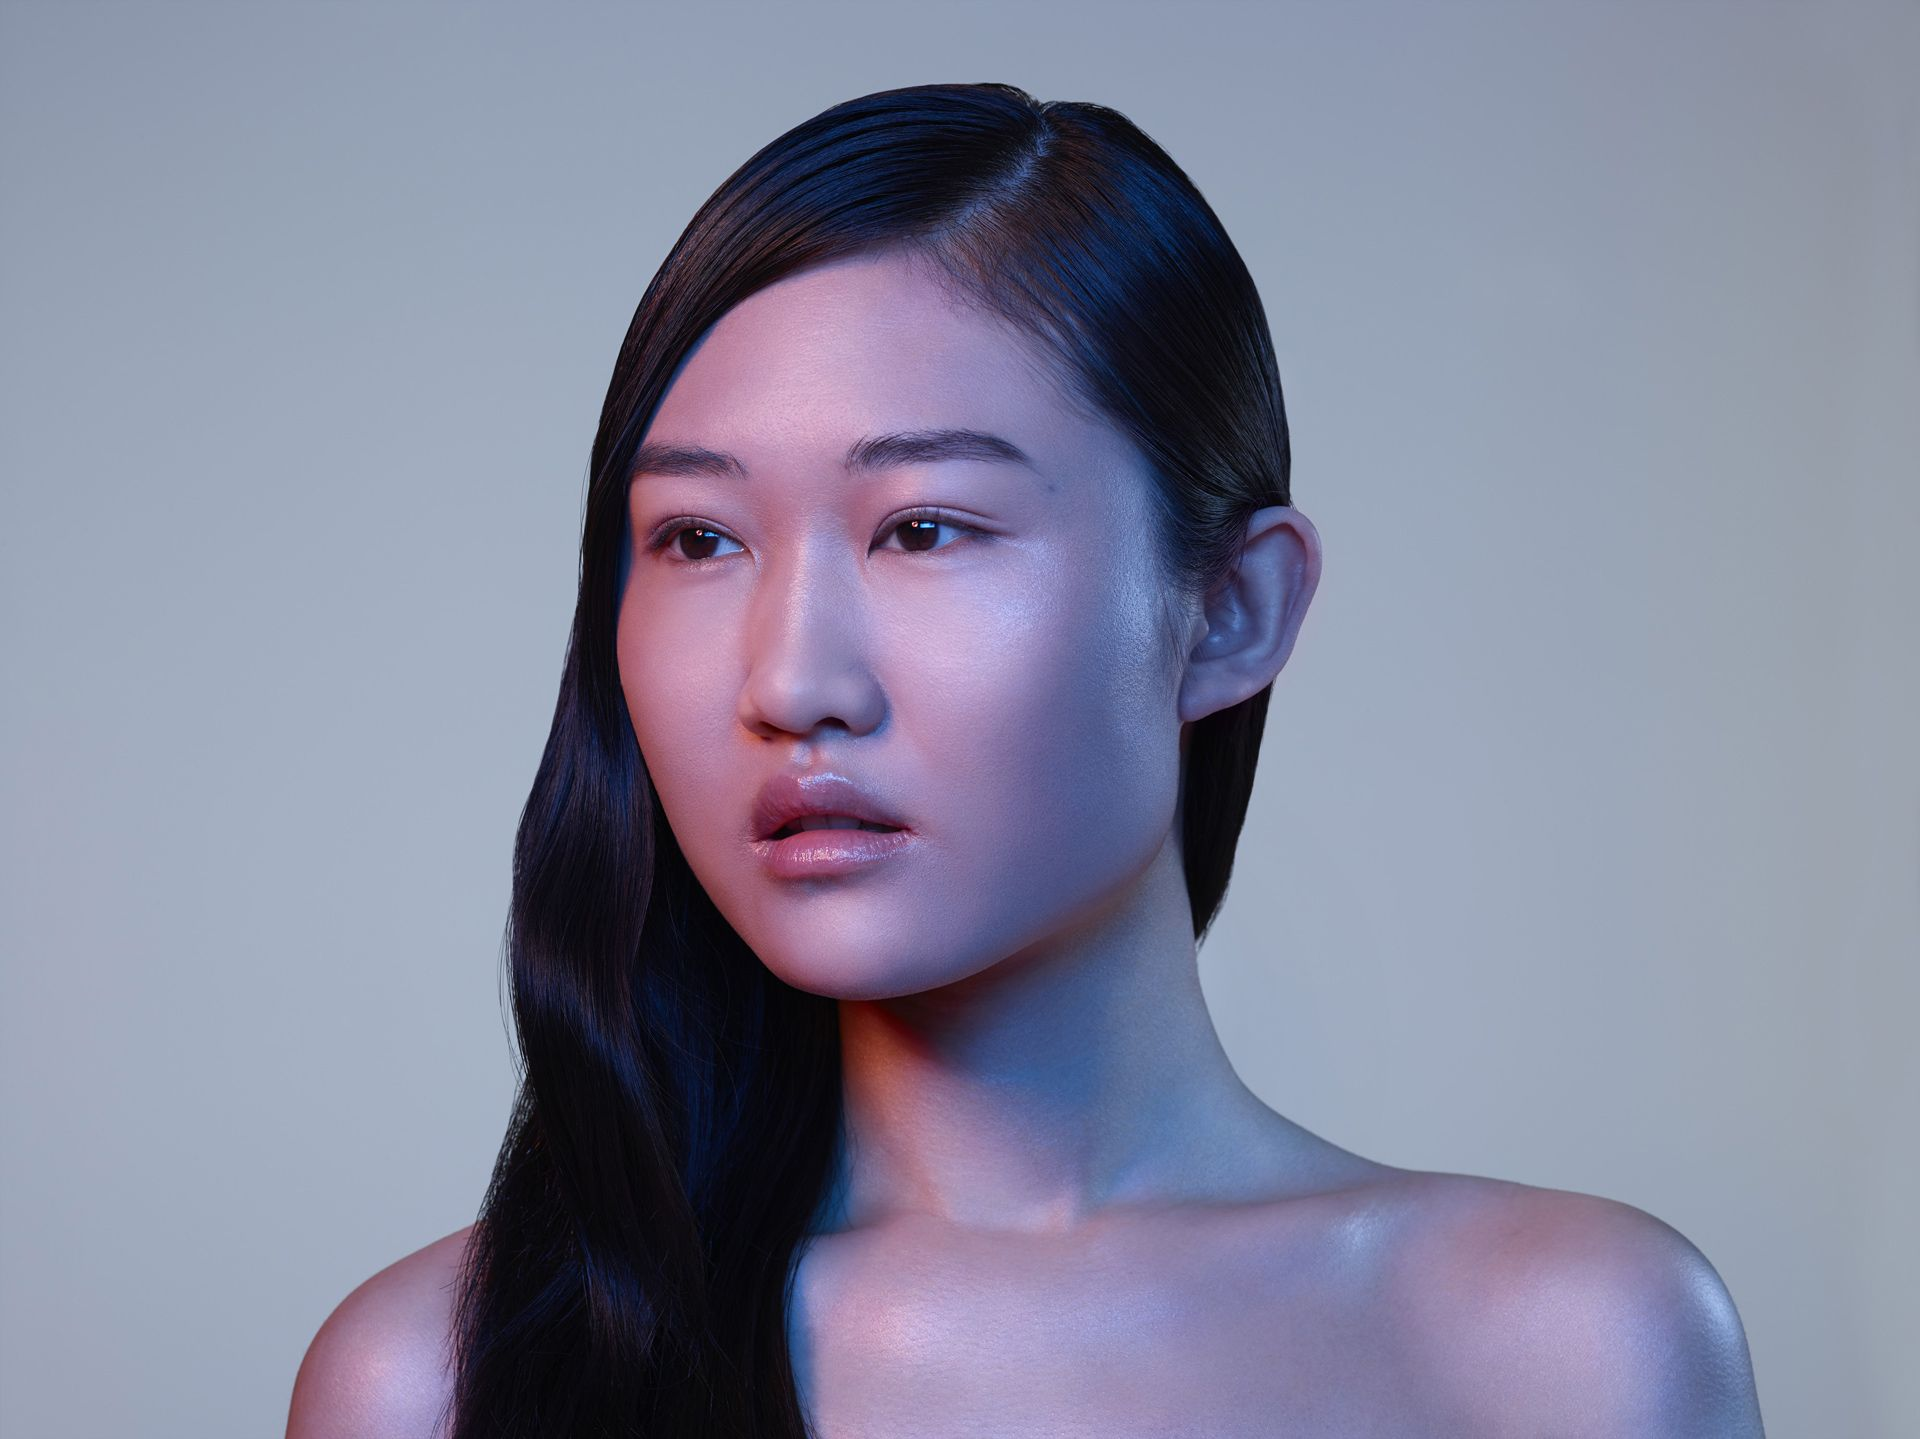 asian woman soft face well groomed black hair looking away from camera in cold coloured lights on light pink background by Simon Duhamel for Skintone